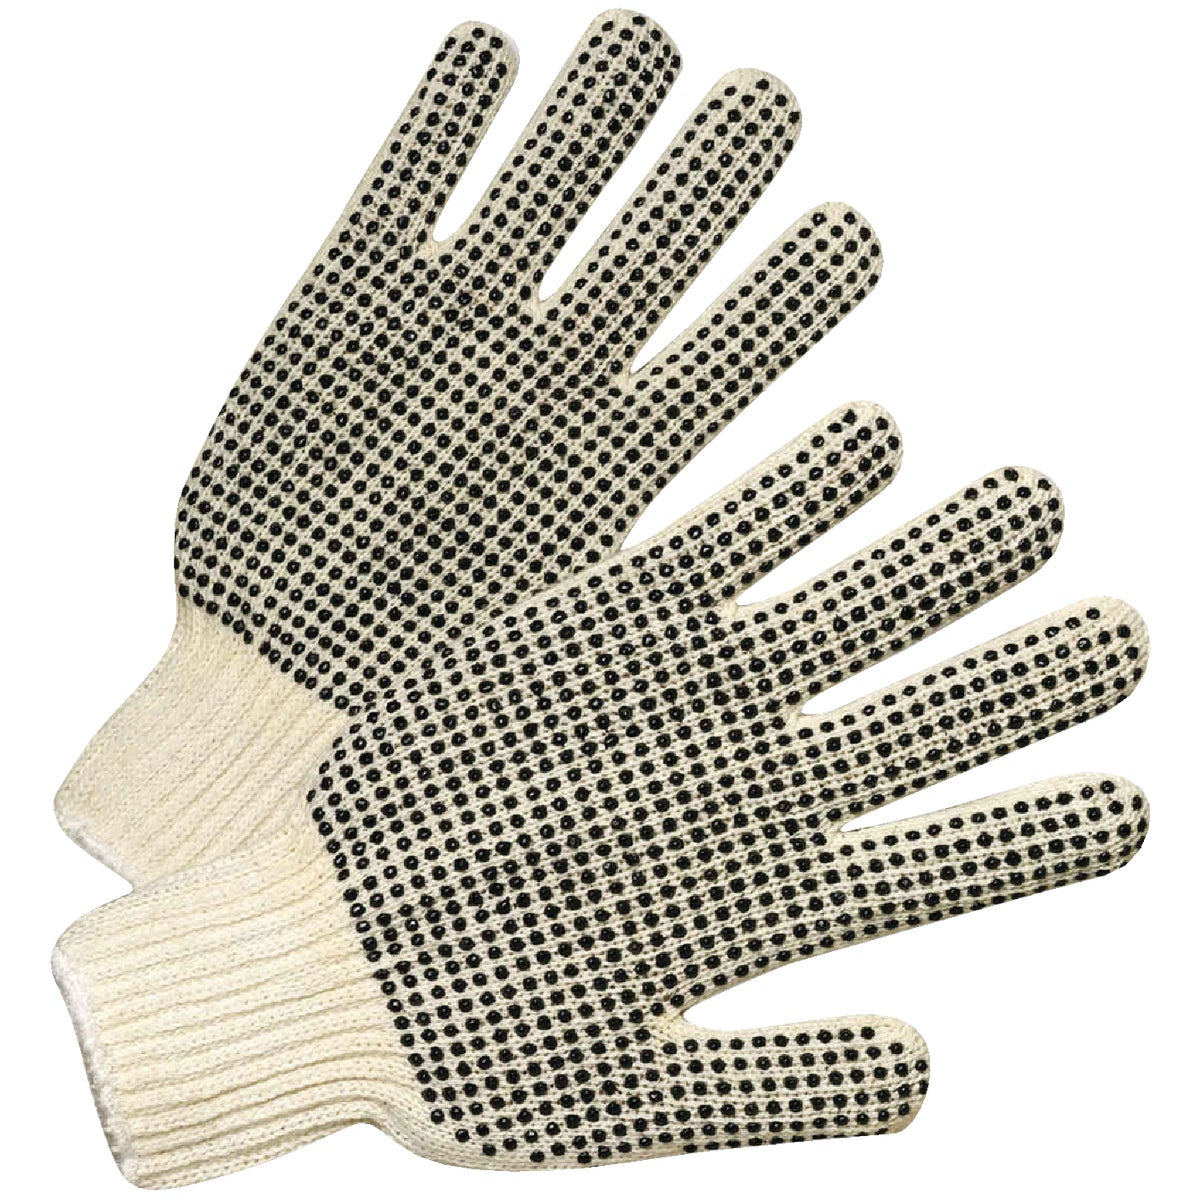 LG DBLE DOT STRING GLOVE - 30010/L by West Chester Incom